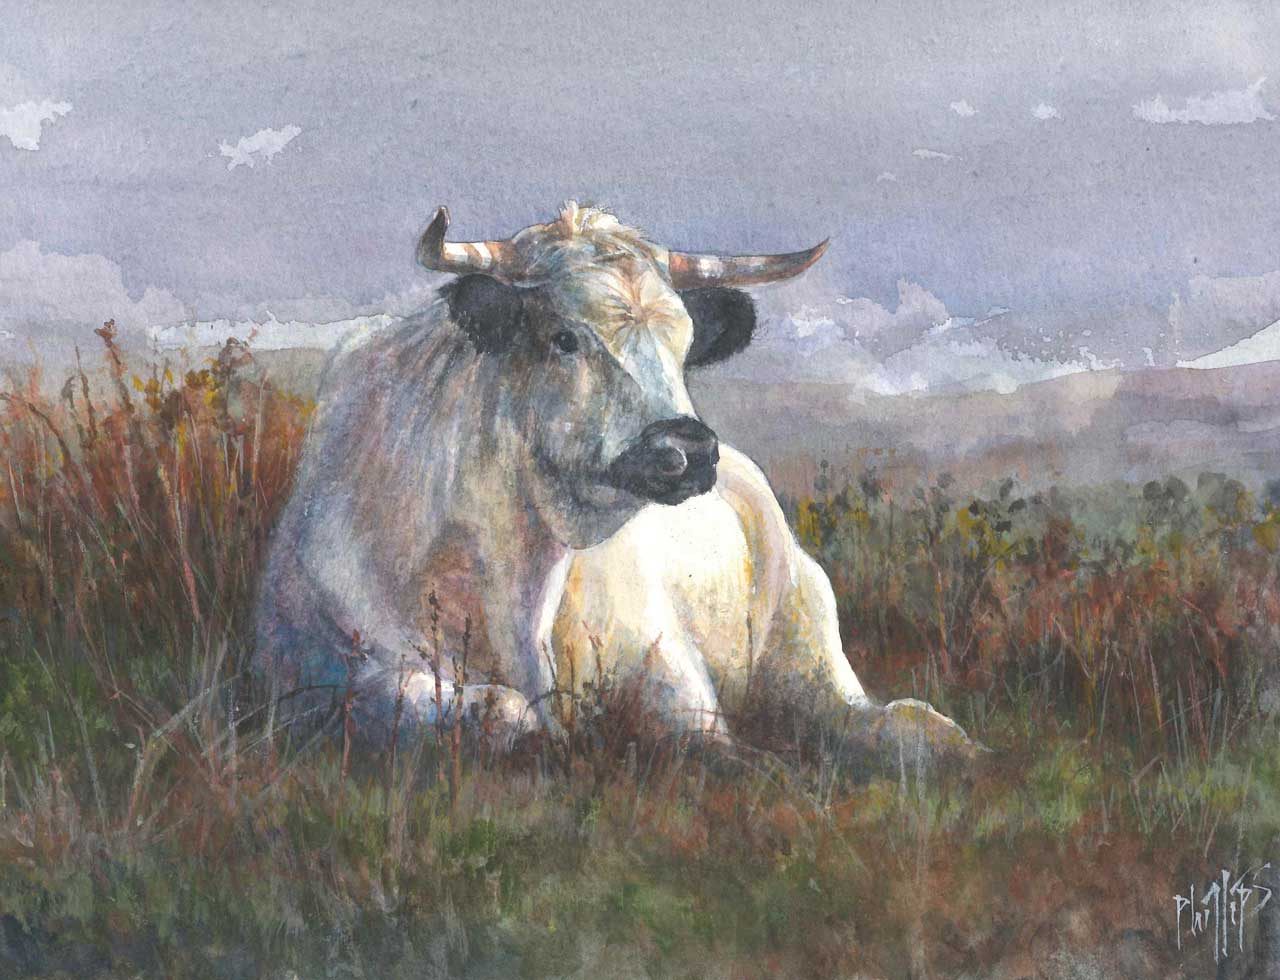 Painting of Chillingham Belle cattle